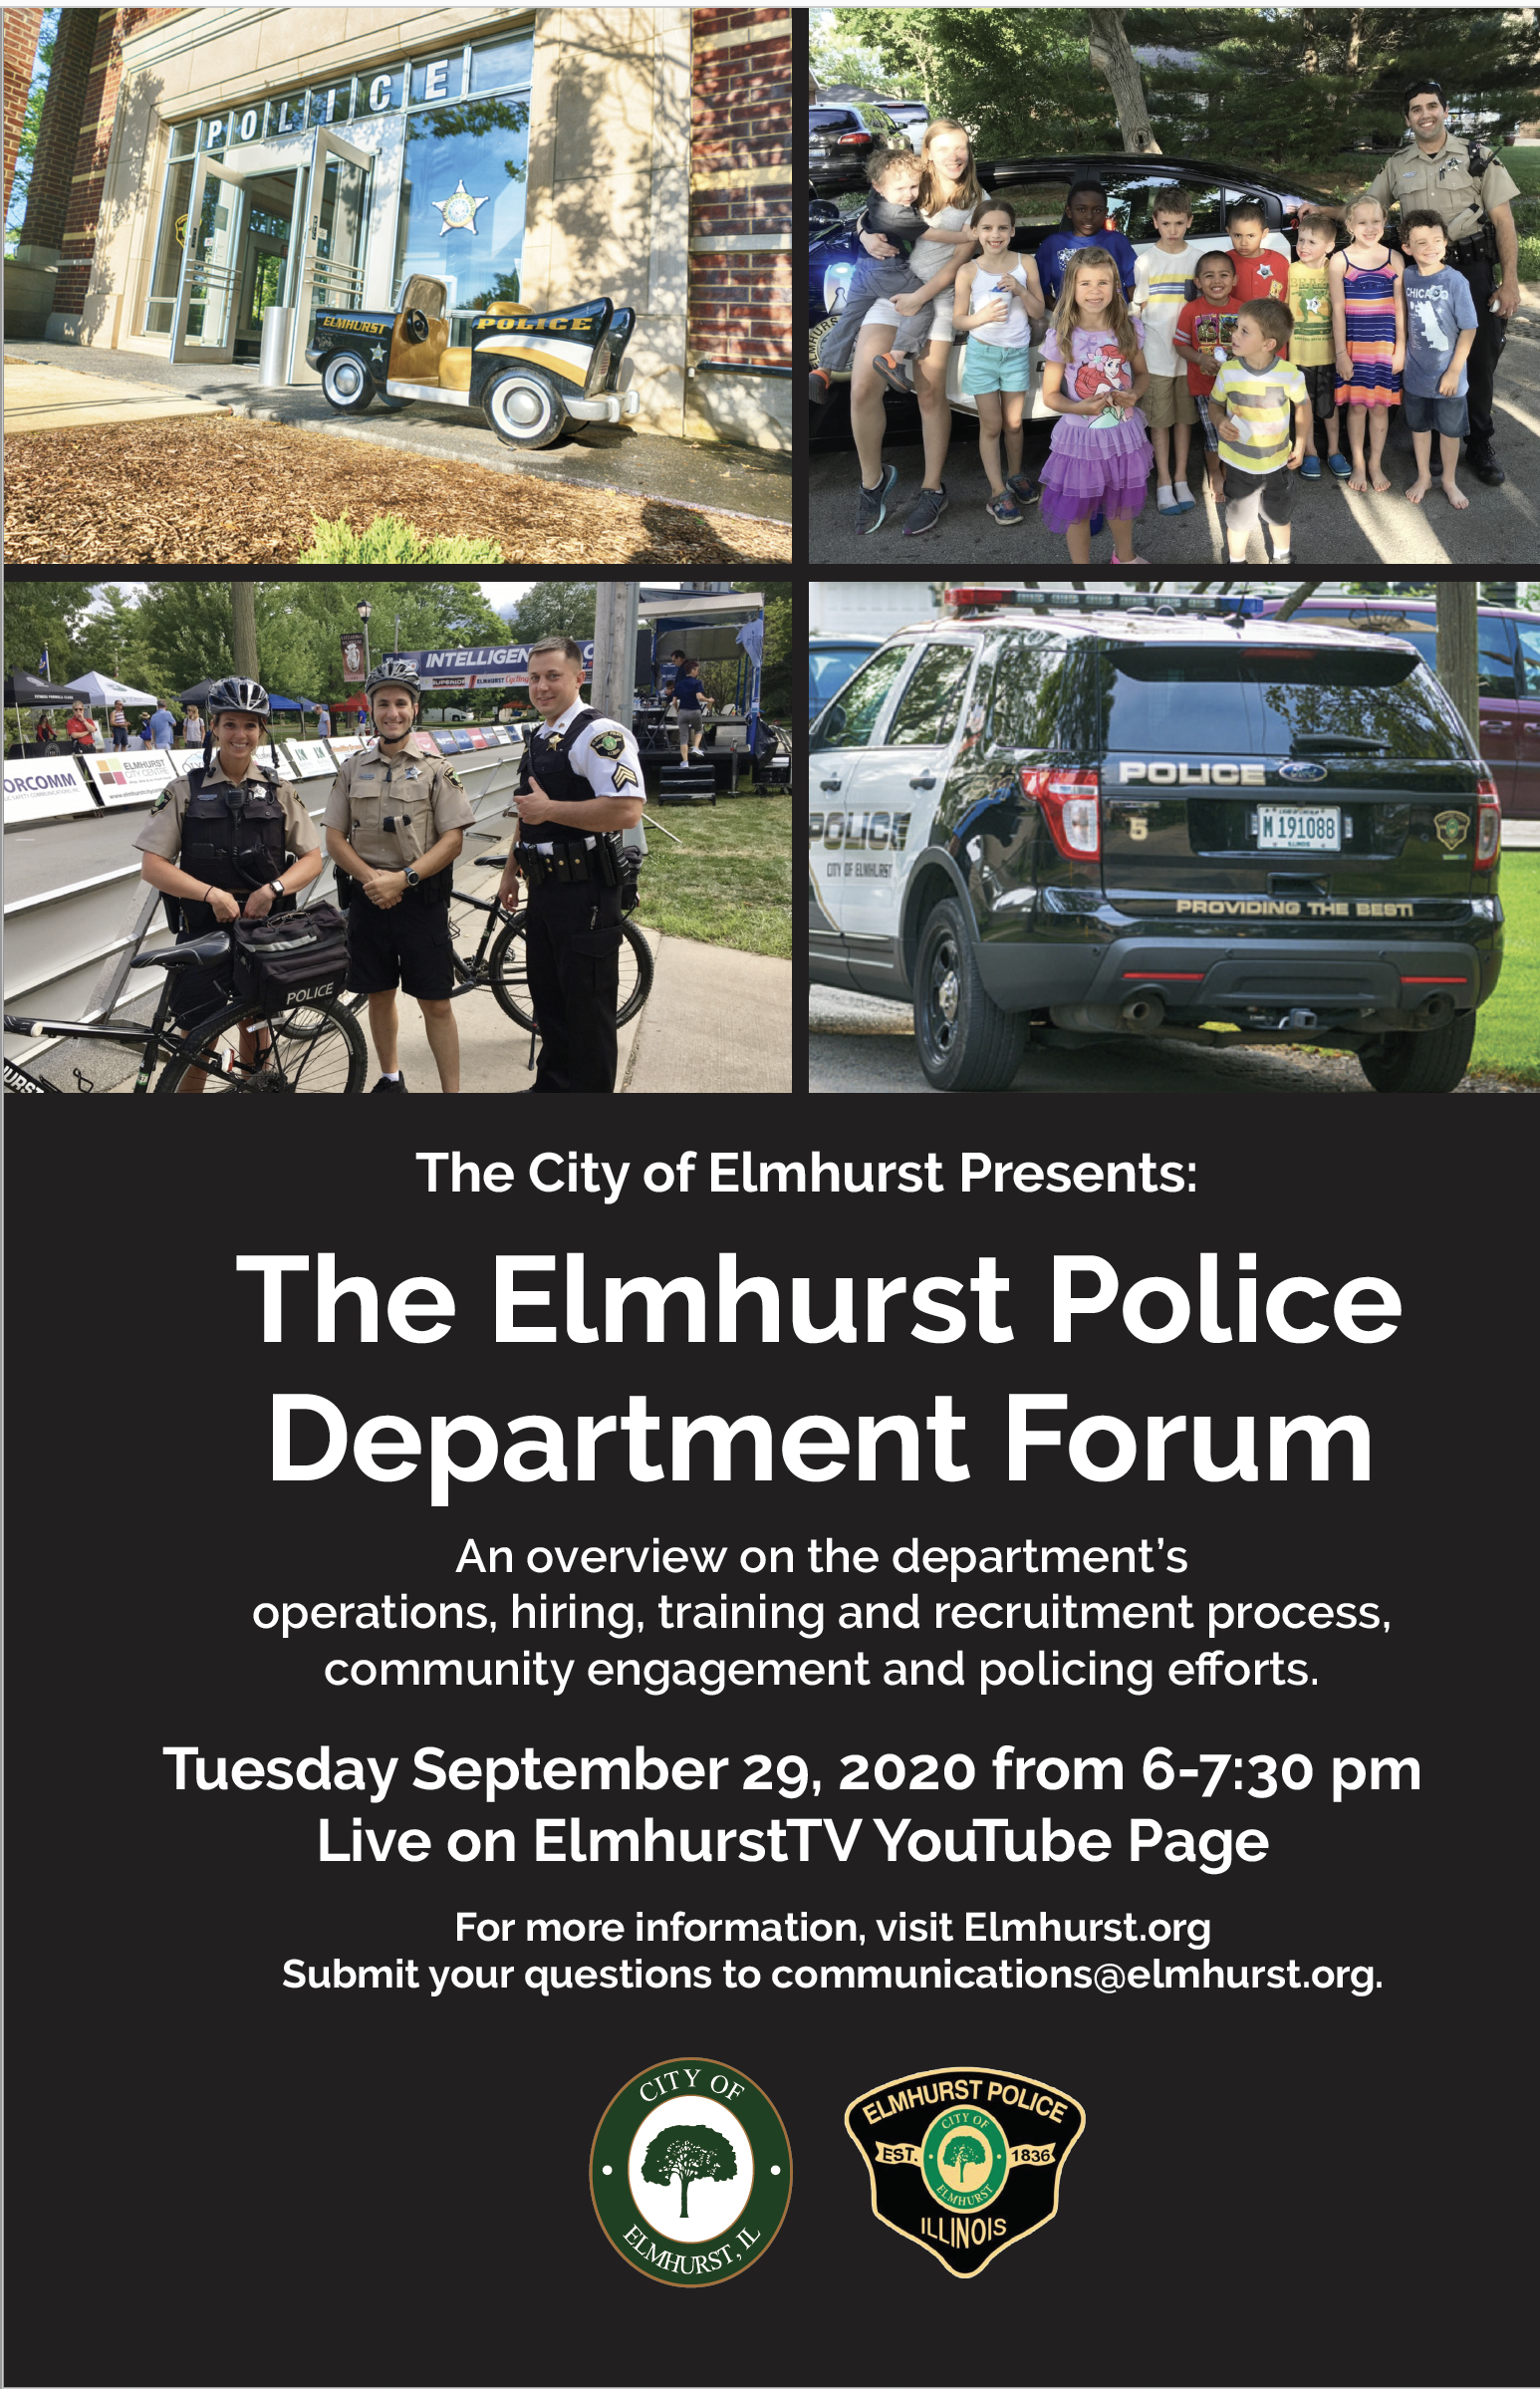 Elmhurst Police Department Forum